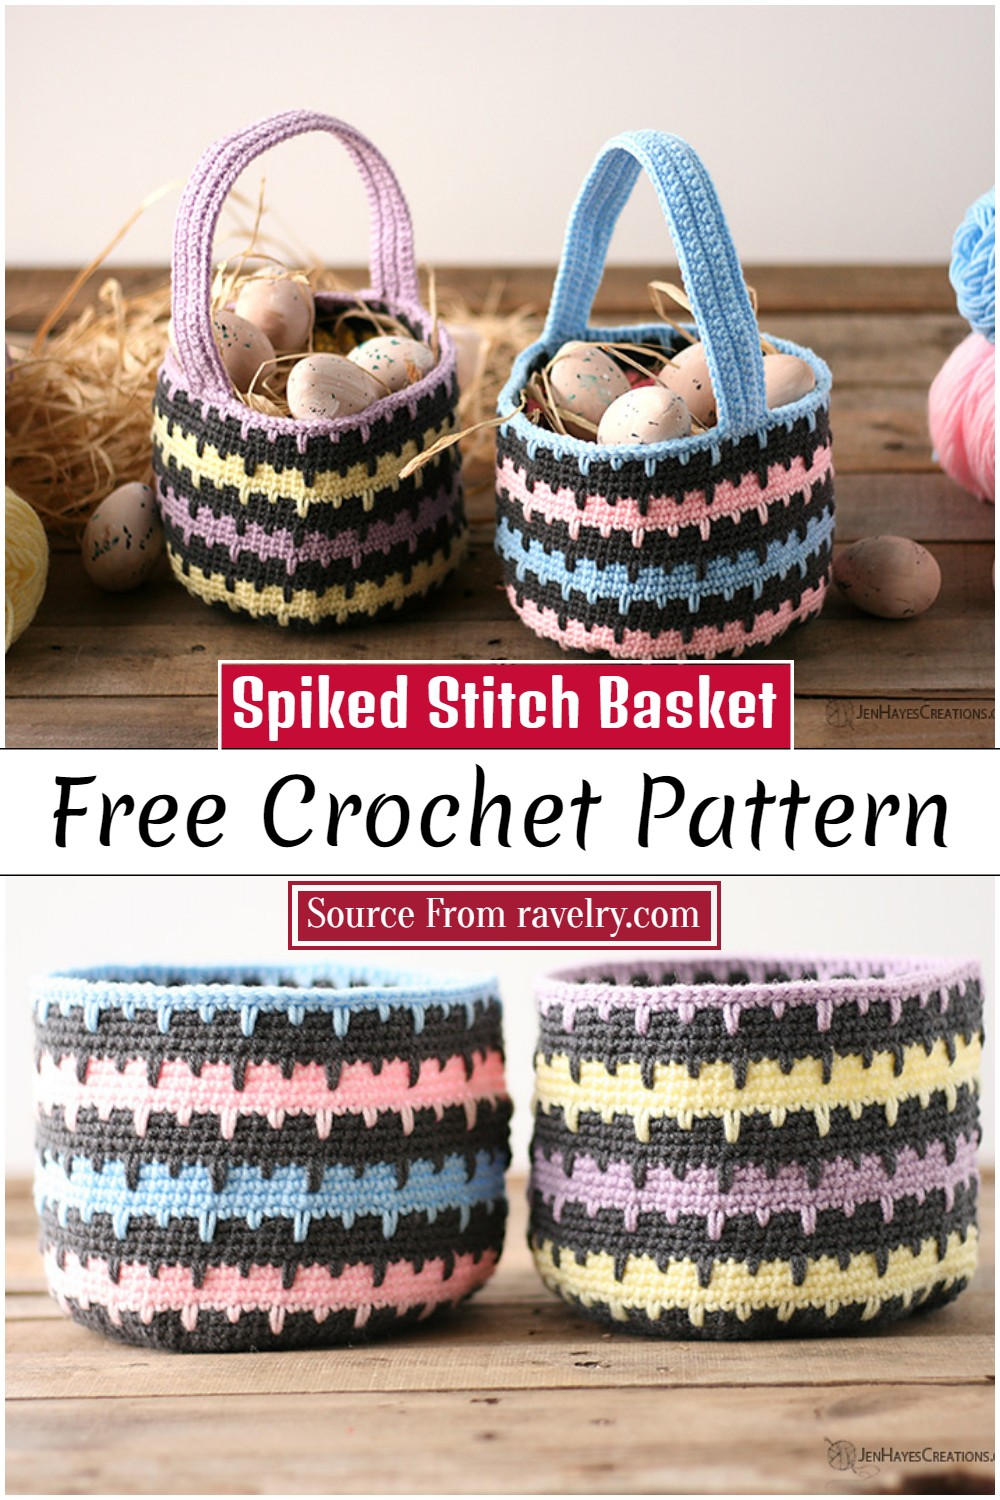 Crochet Spiked Stitch Basket Pattern